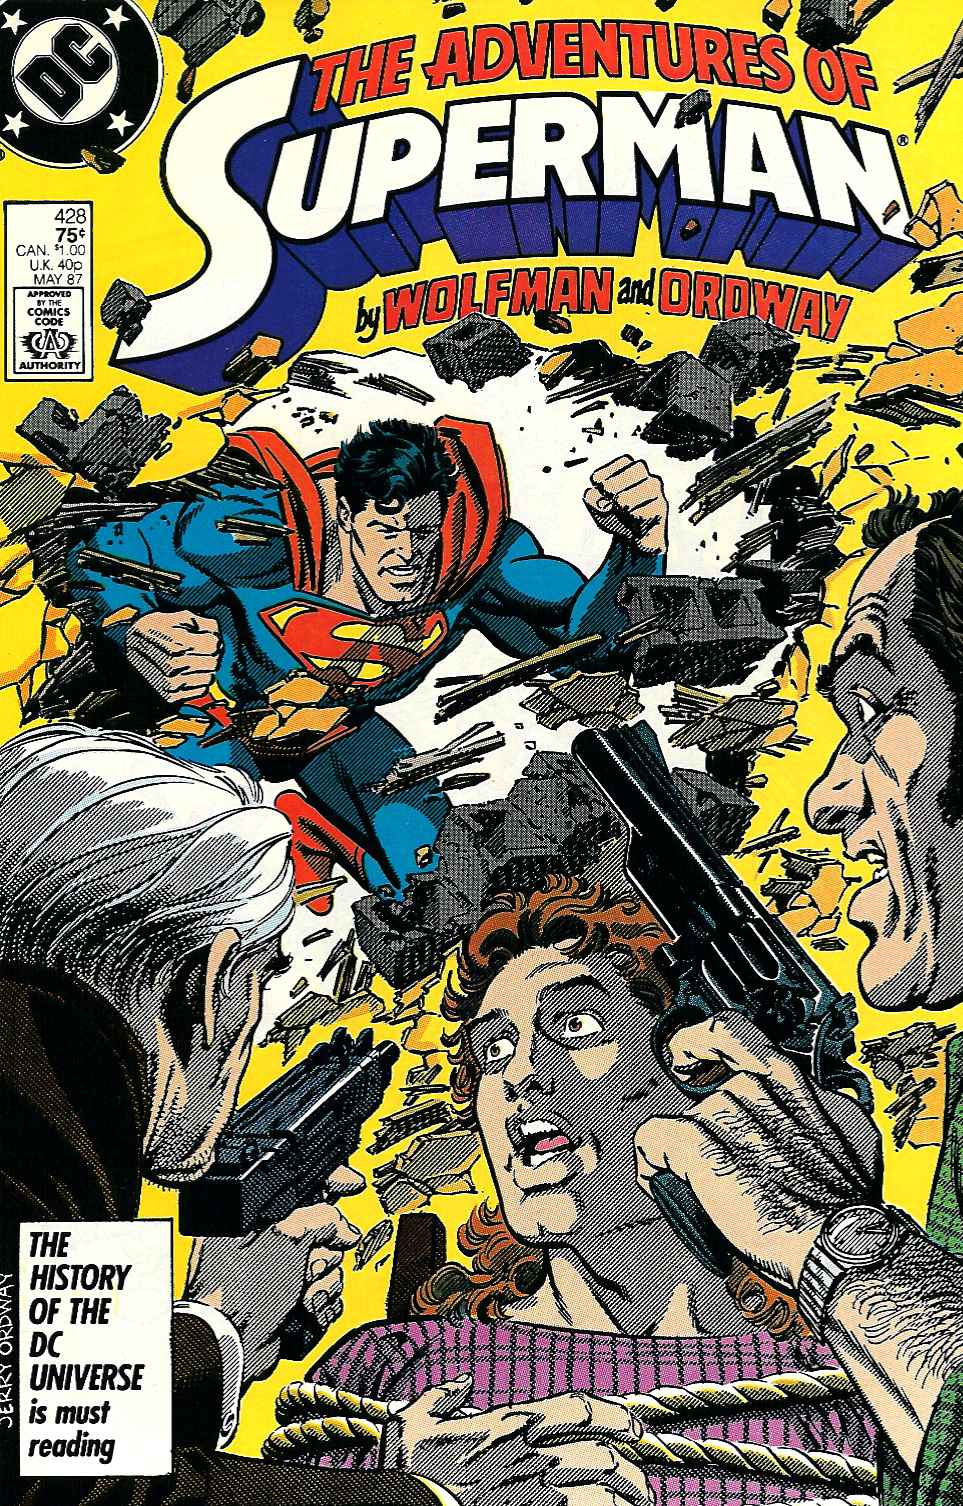 Adventures of Superman (1987) 428 Page 1